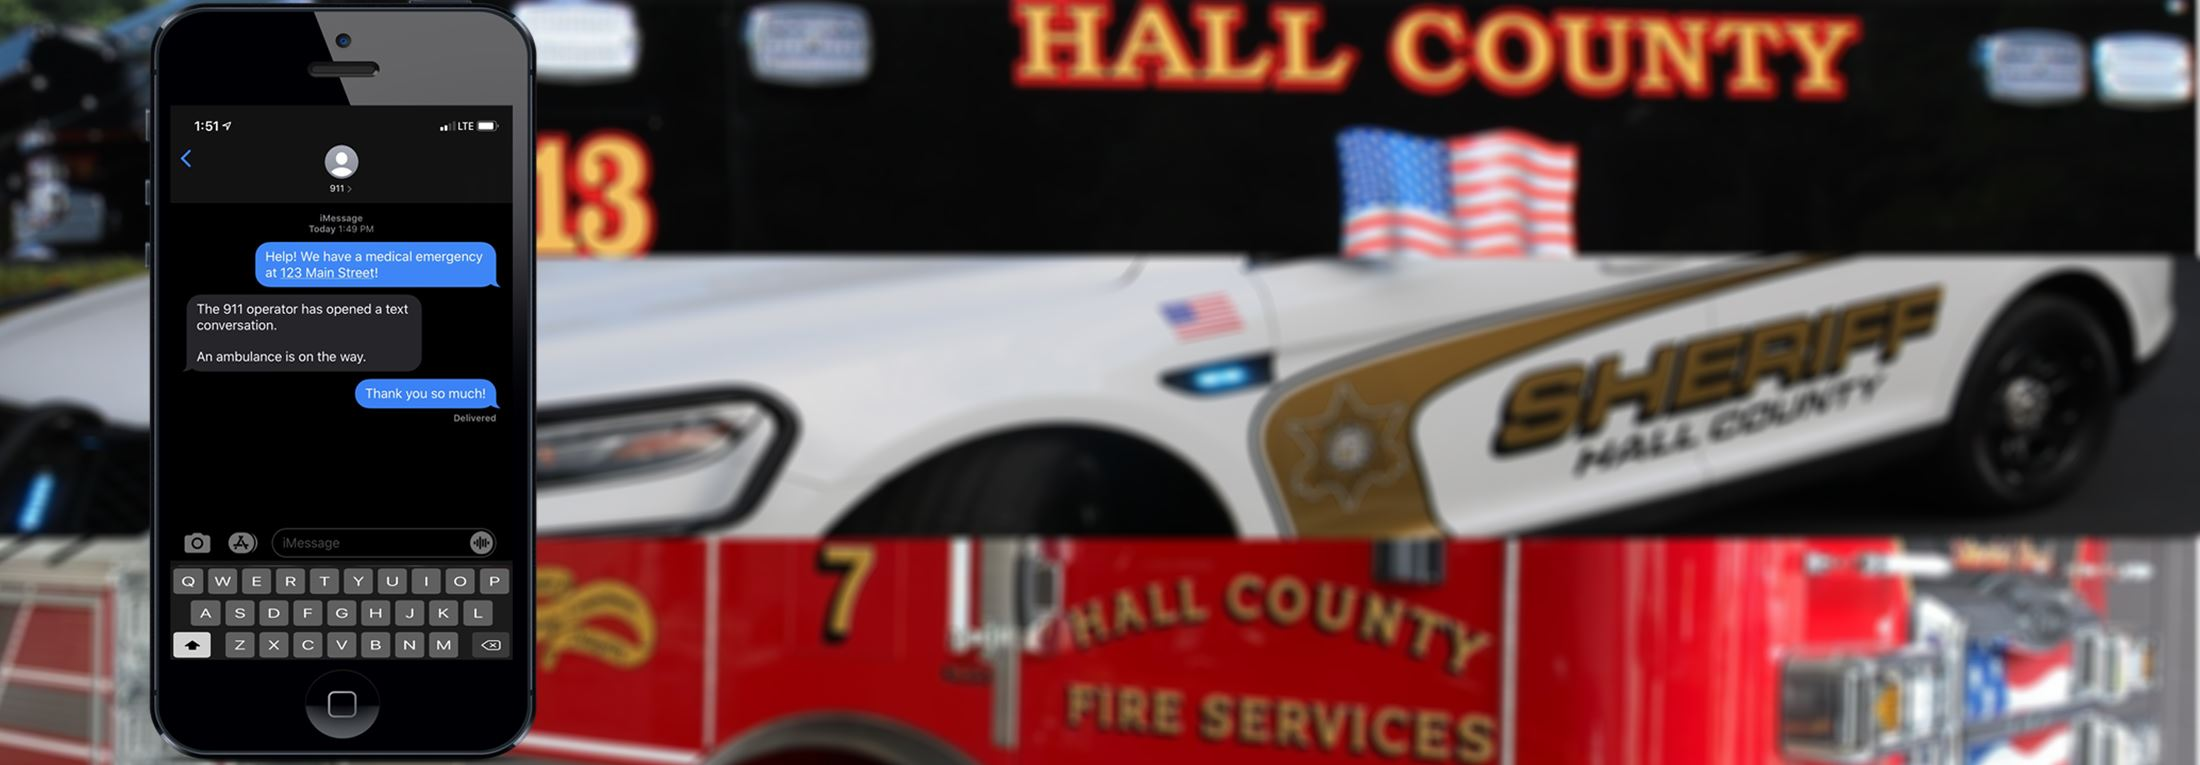 Hall County residents can now send a text message to contact 911.